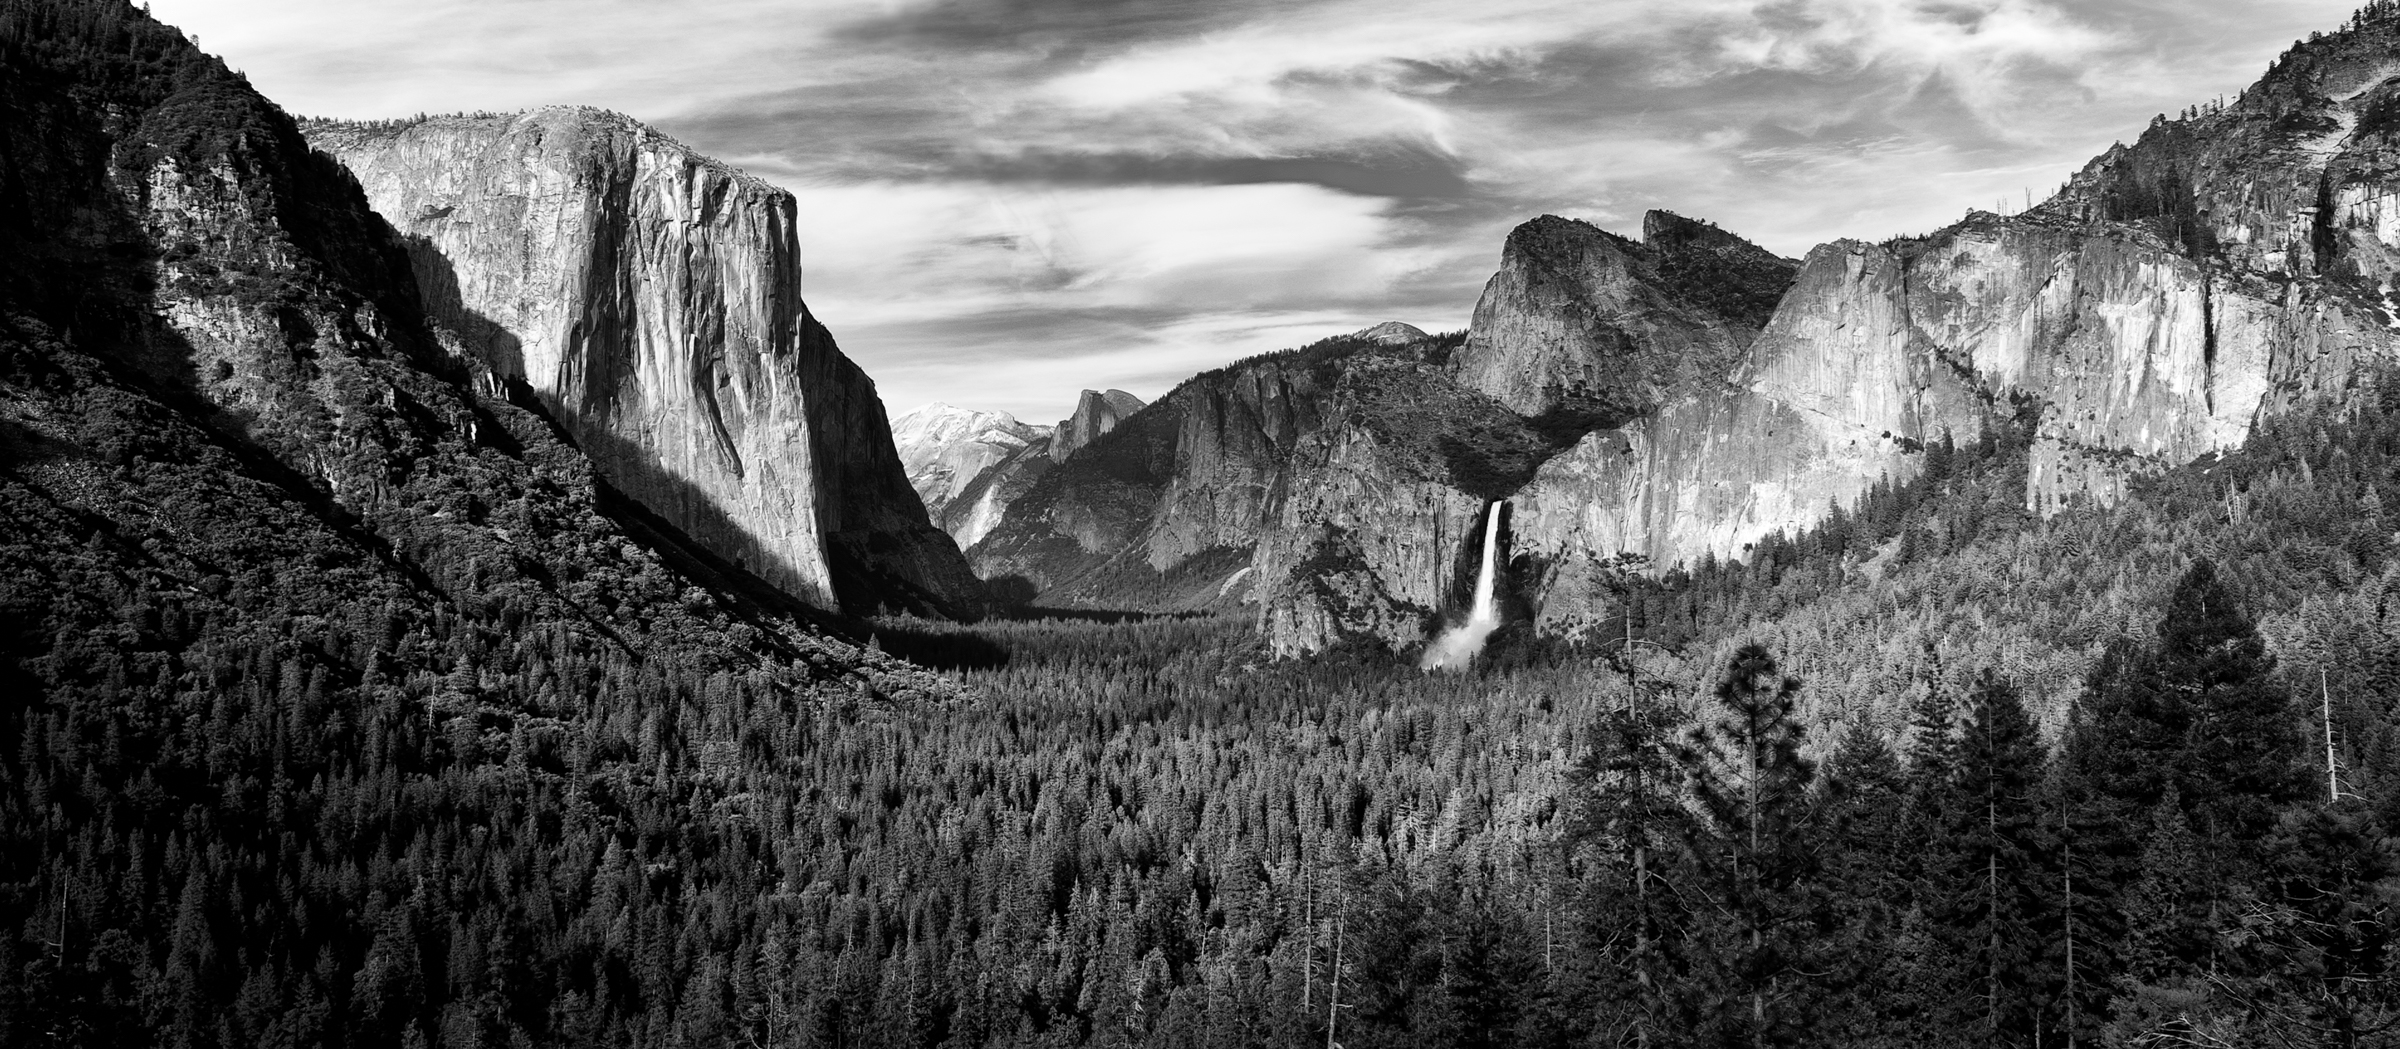 """For Ansel"" - Yosemite Valley - June 8, 2010"